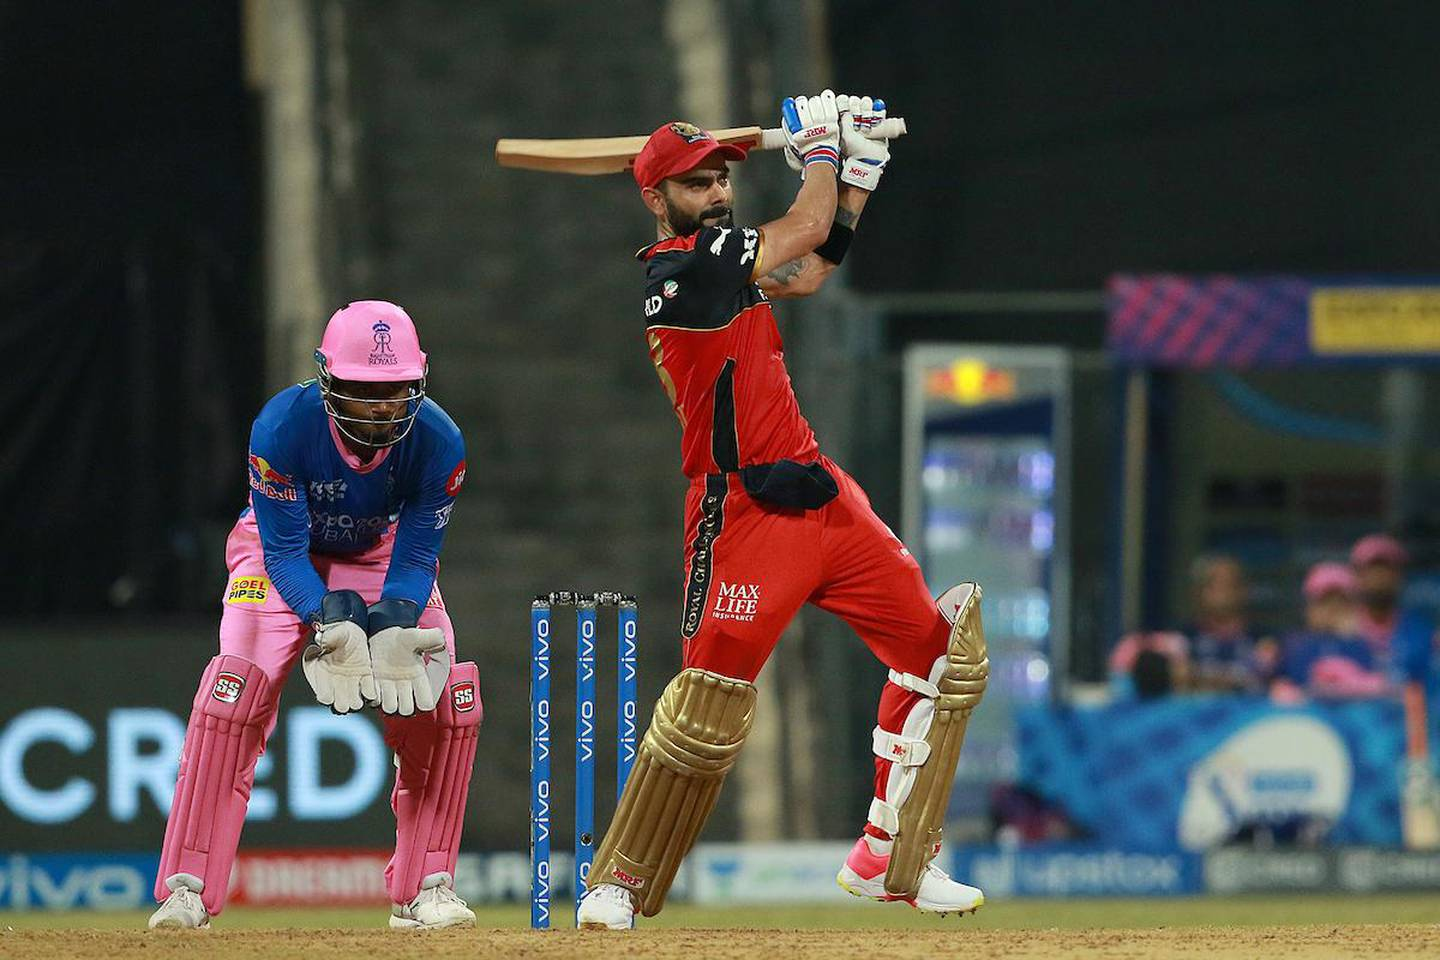 Virat Kohli Captain of Royal Challengers Bangalore plays a shot  during  during match 16 of the Vivo Indian Premier League 2021 between the Royal Challengers Bangalore and the Rajasthan Royals held at the Wankhede Stadium Mumbai on the 22nd April 2021.  Photo by Rahul Gulati/ Sportzpics for IPL